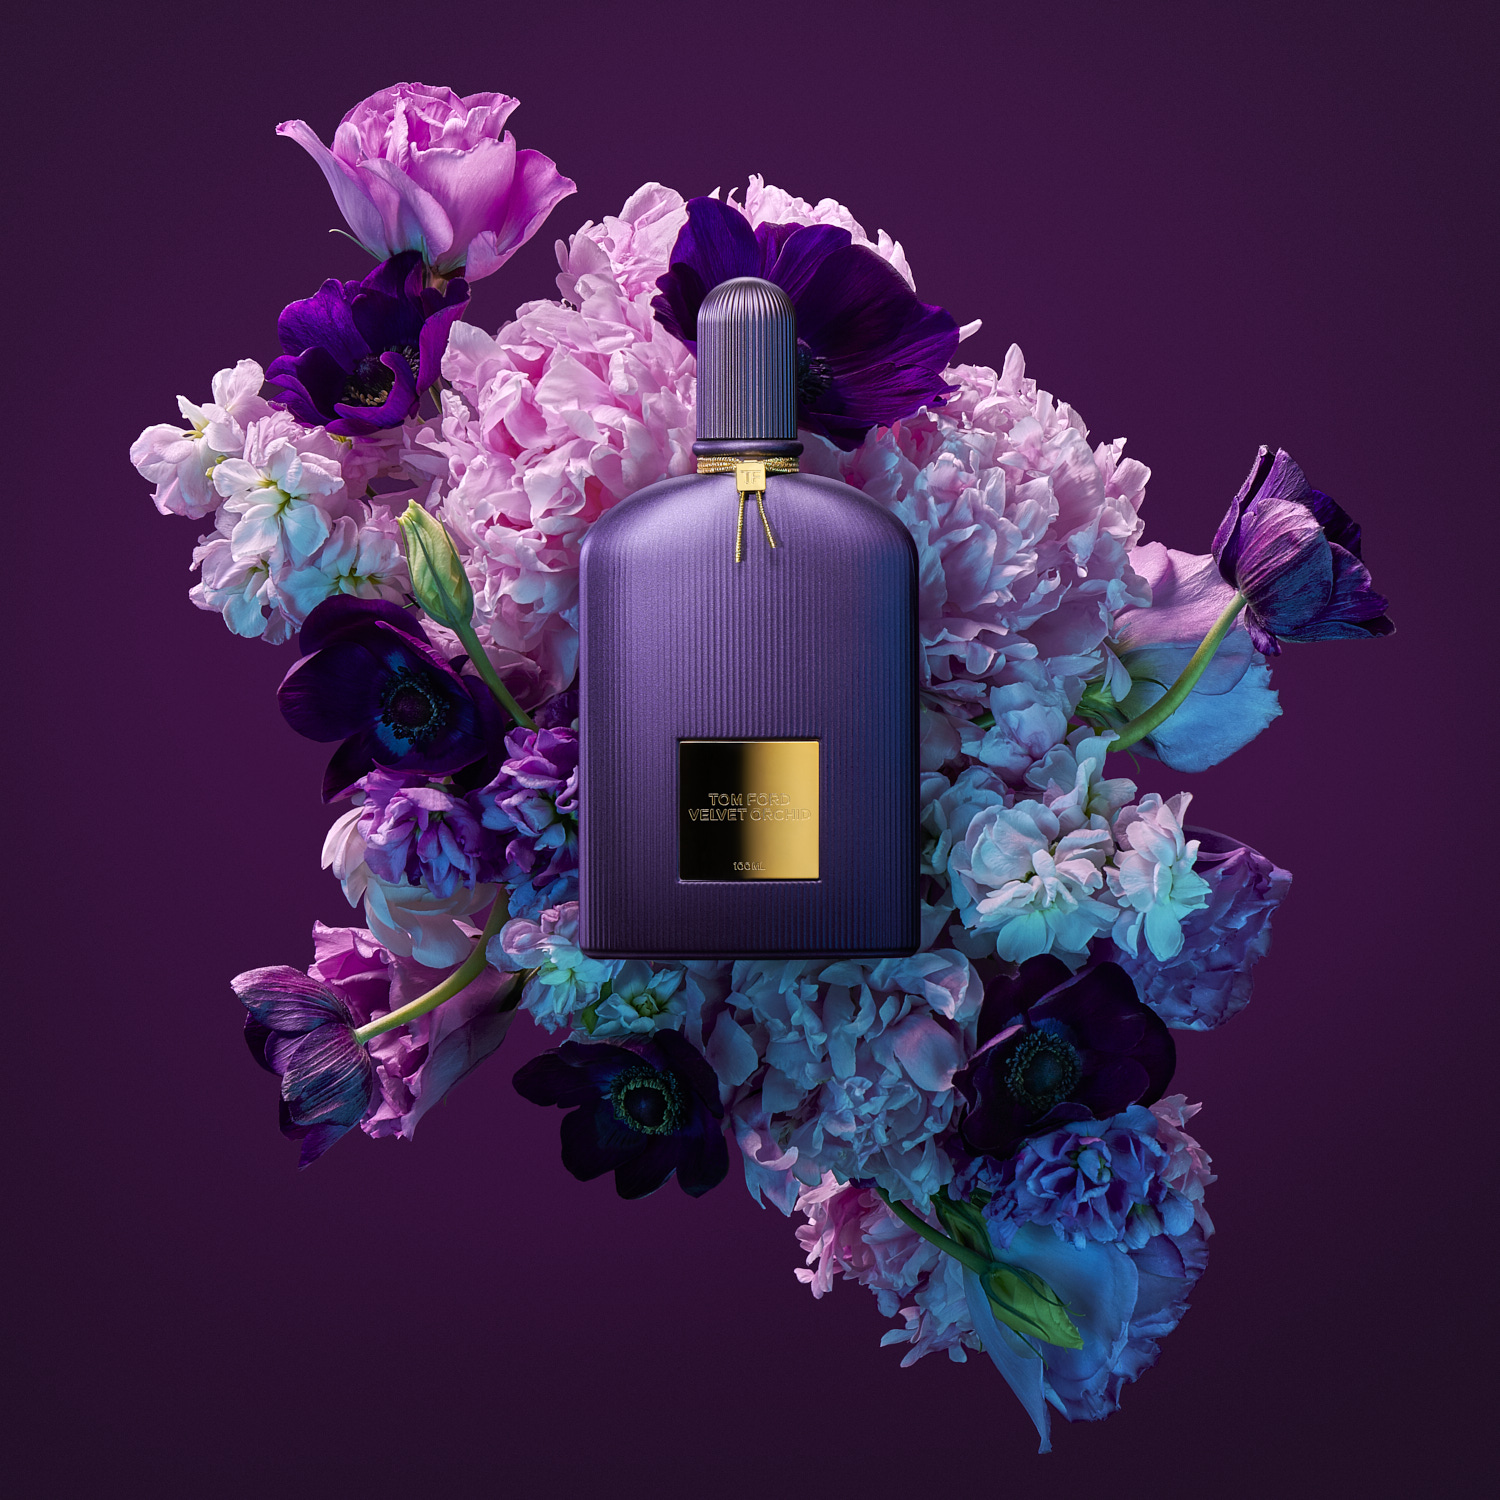 Tom Ford Velvet Orchid By Luxury Product Photographer Matthew Roharik